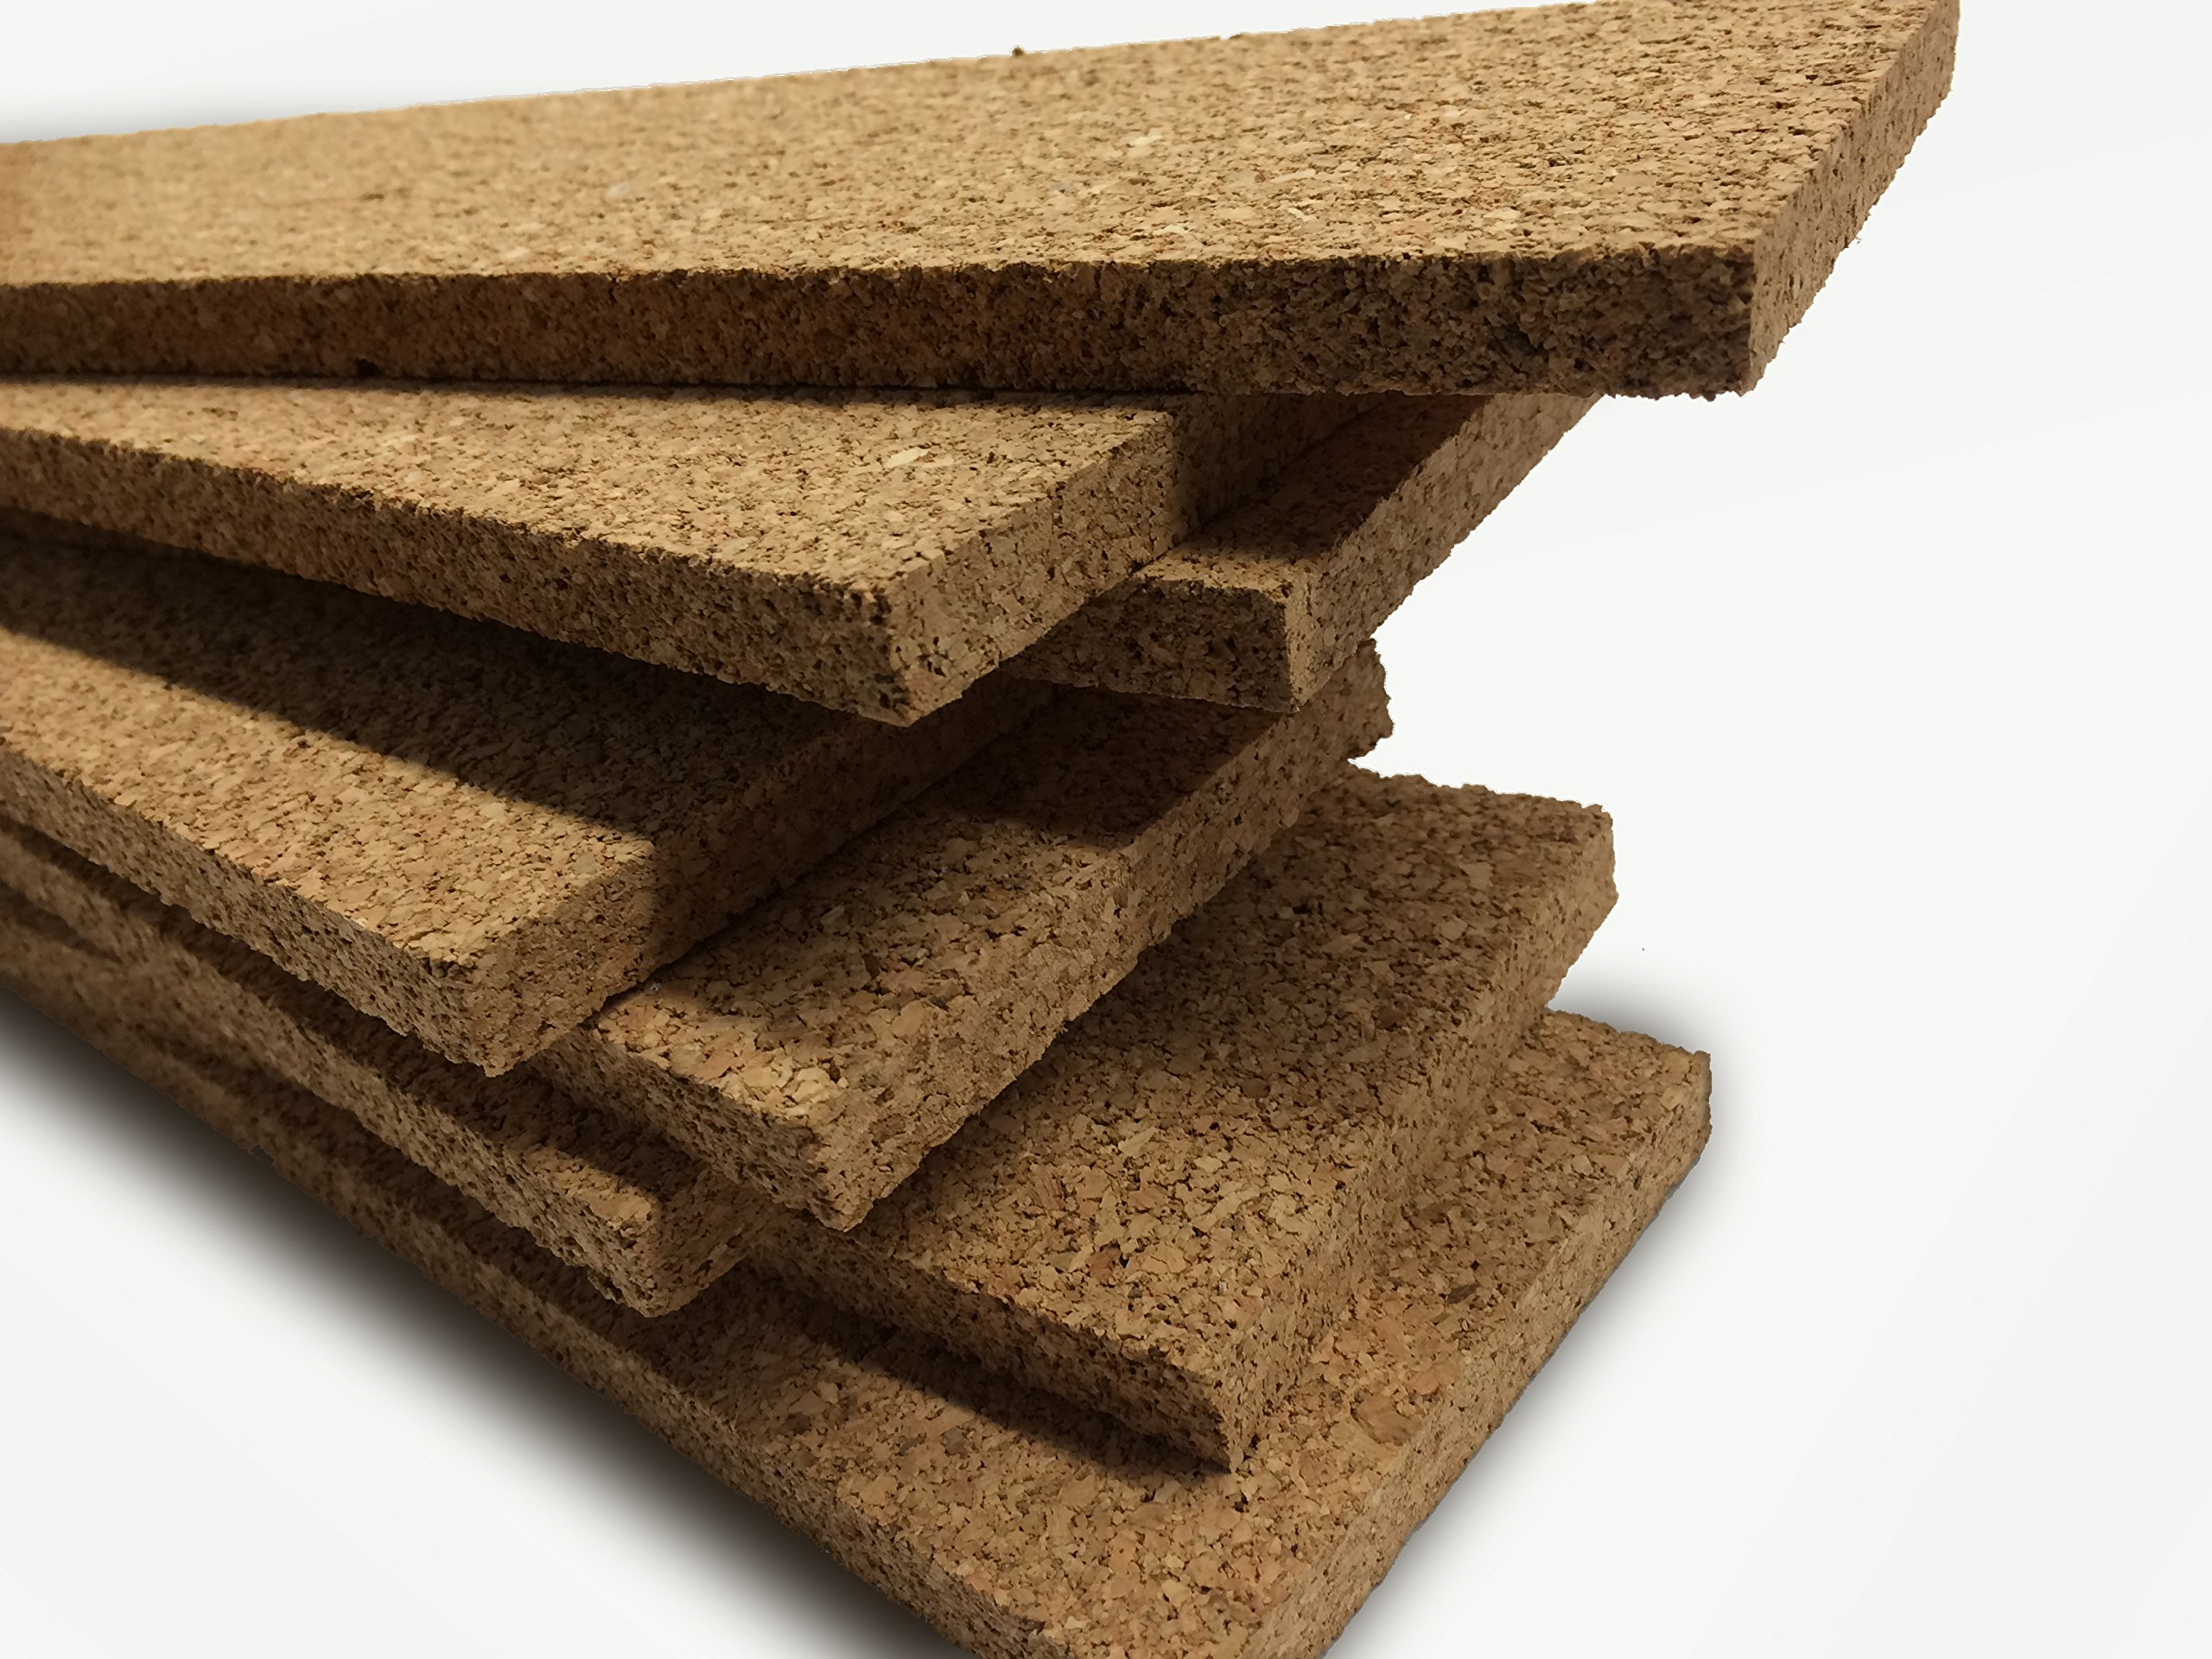 Thick Multi Purpose Cork Strips (8 Pack) Classroom Bulletin Board Bar 36x3.5x0.5 Inches by Jelinek Cork Group (Image #5)